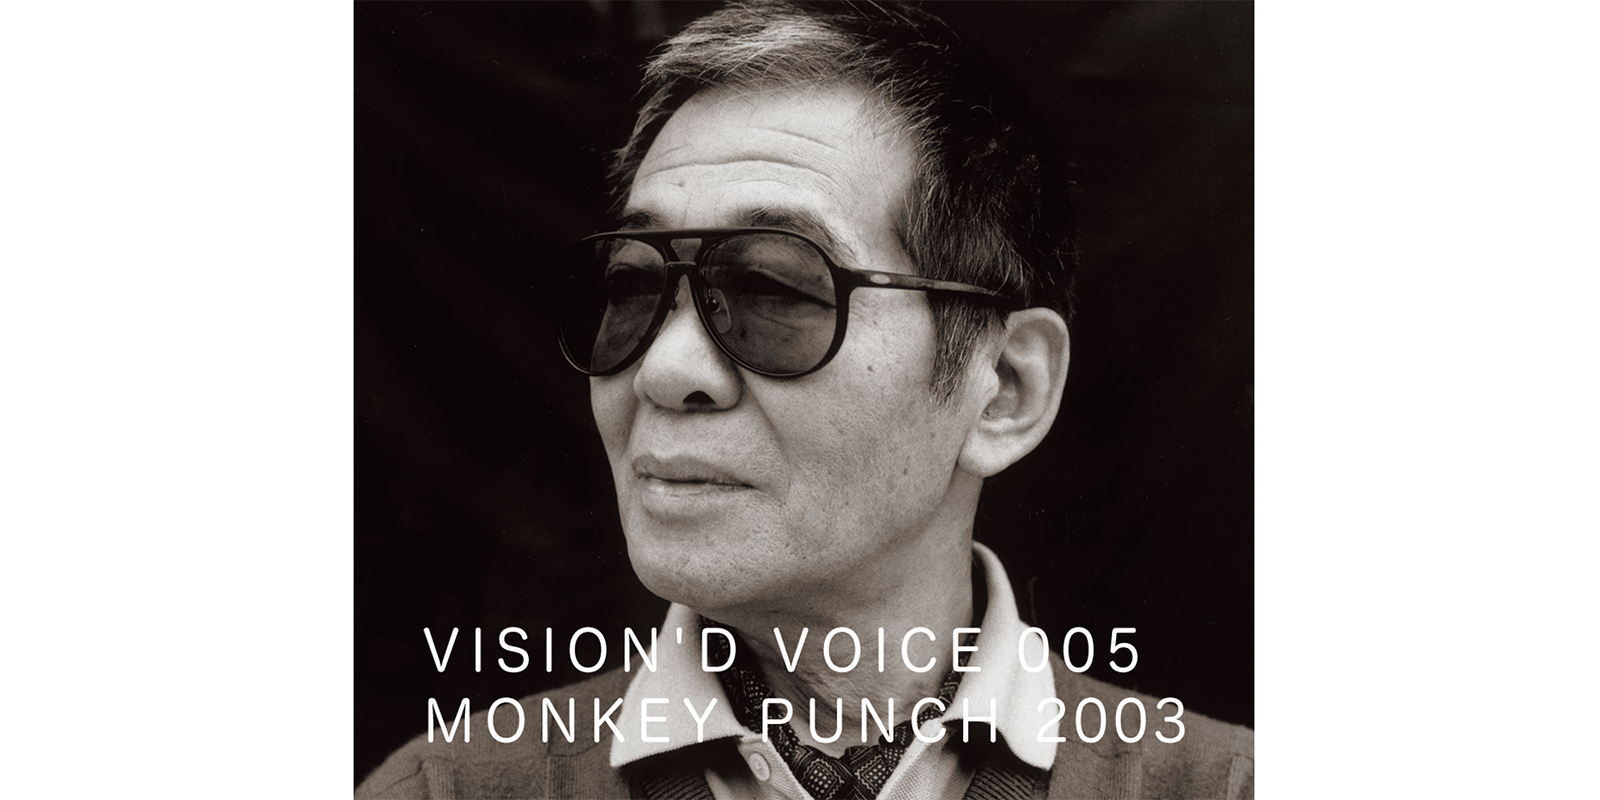 VISION'D VOICE・5・MONKEY PUNCH 2003